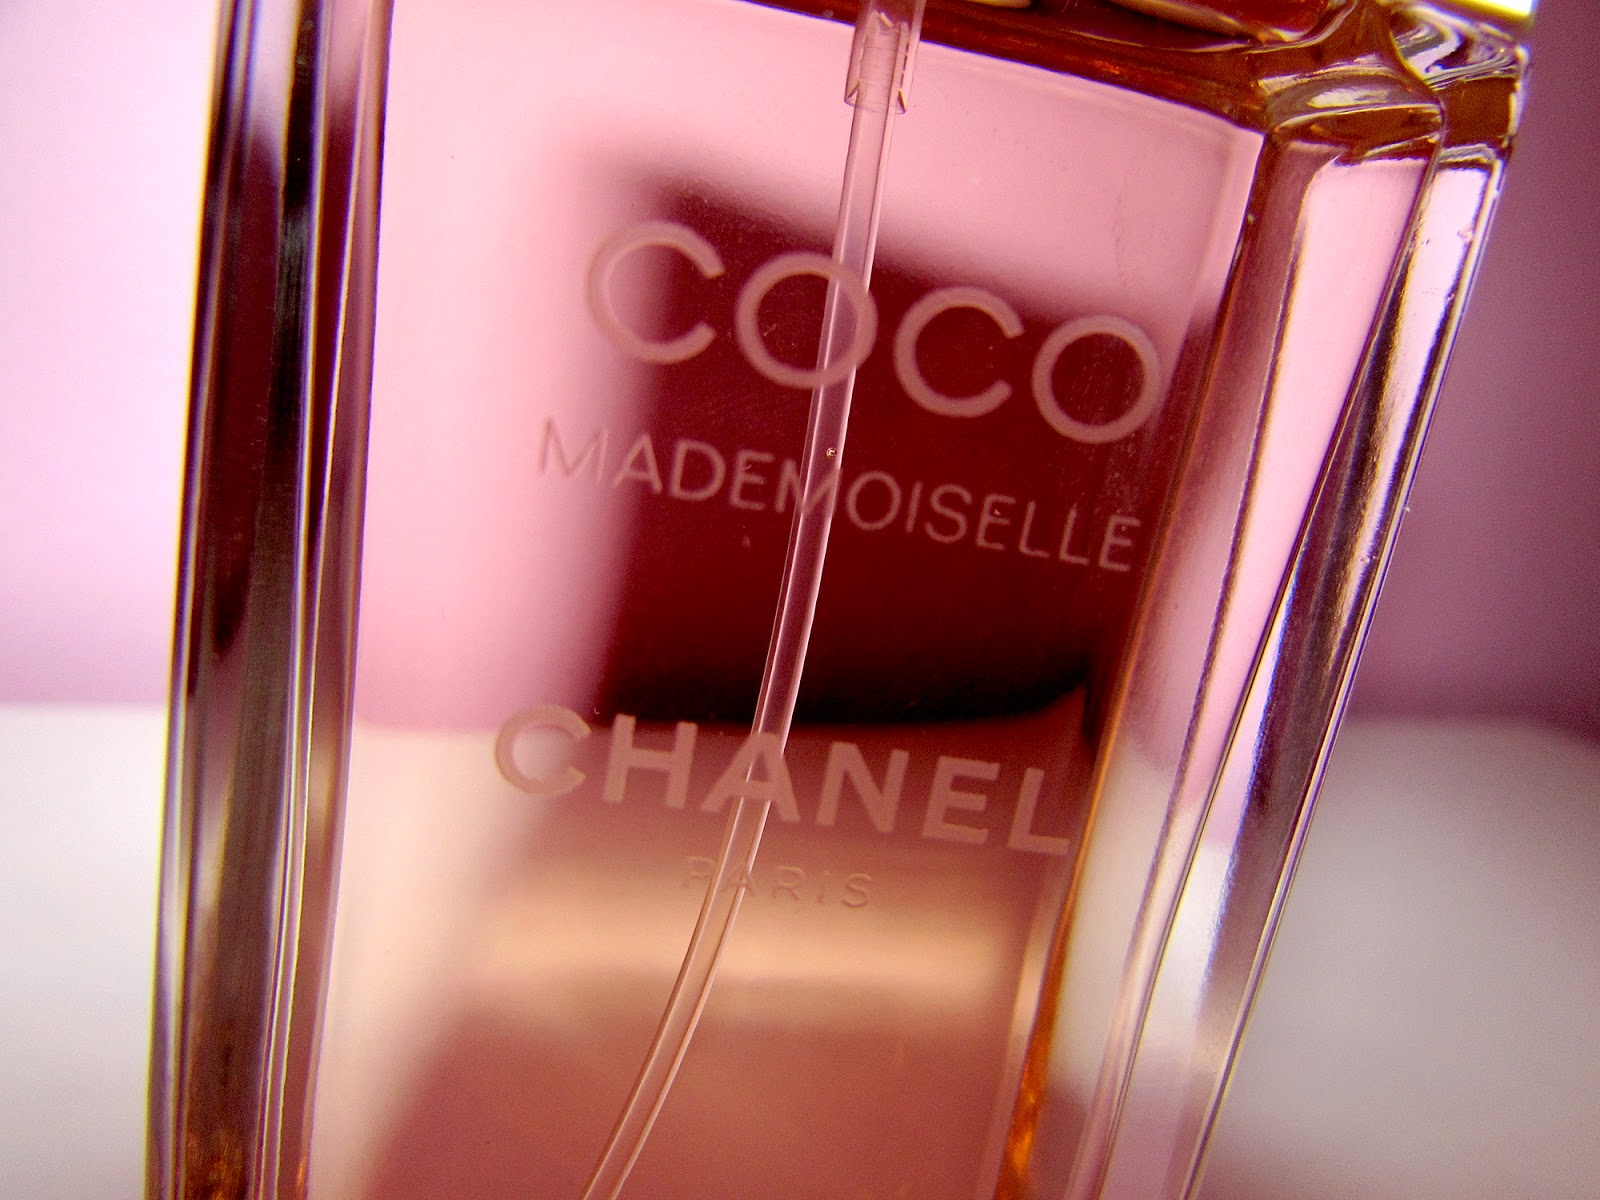 chanel coco mademoiselle perfume review dollfaceblogs. Black Bedroom Furniture Sets. Home Design Ideas